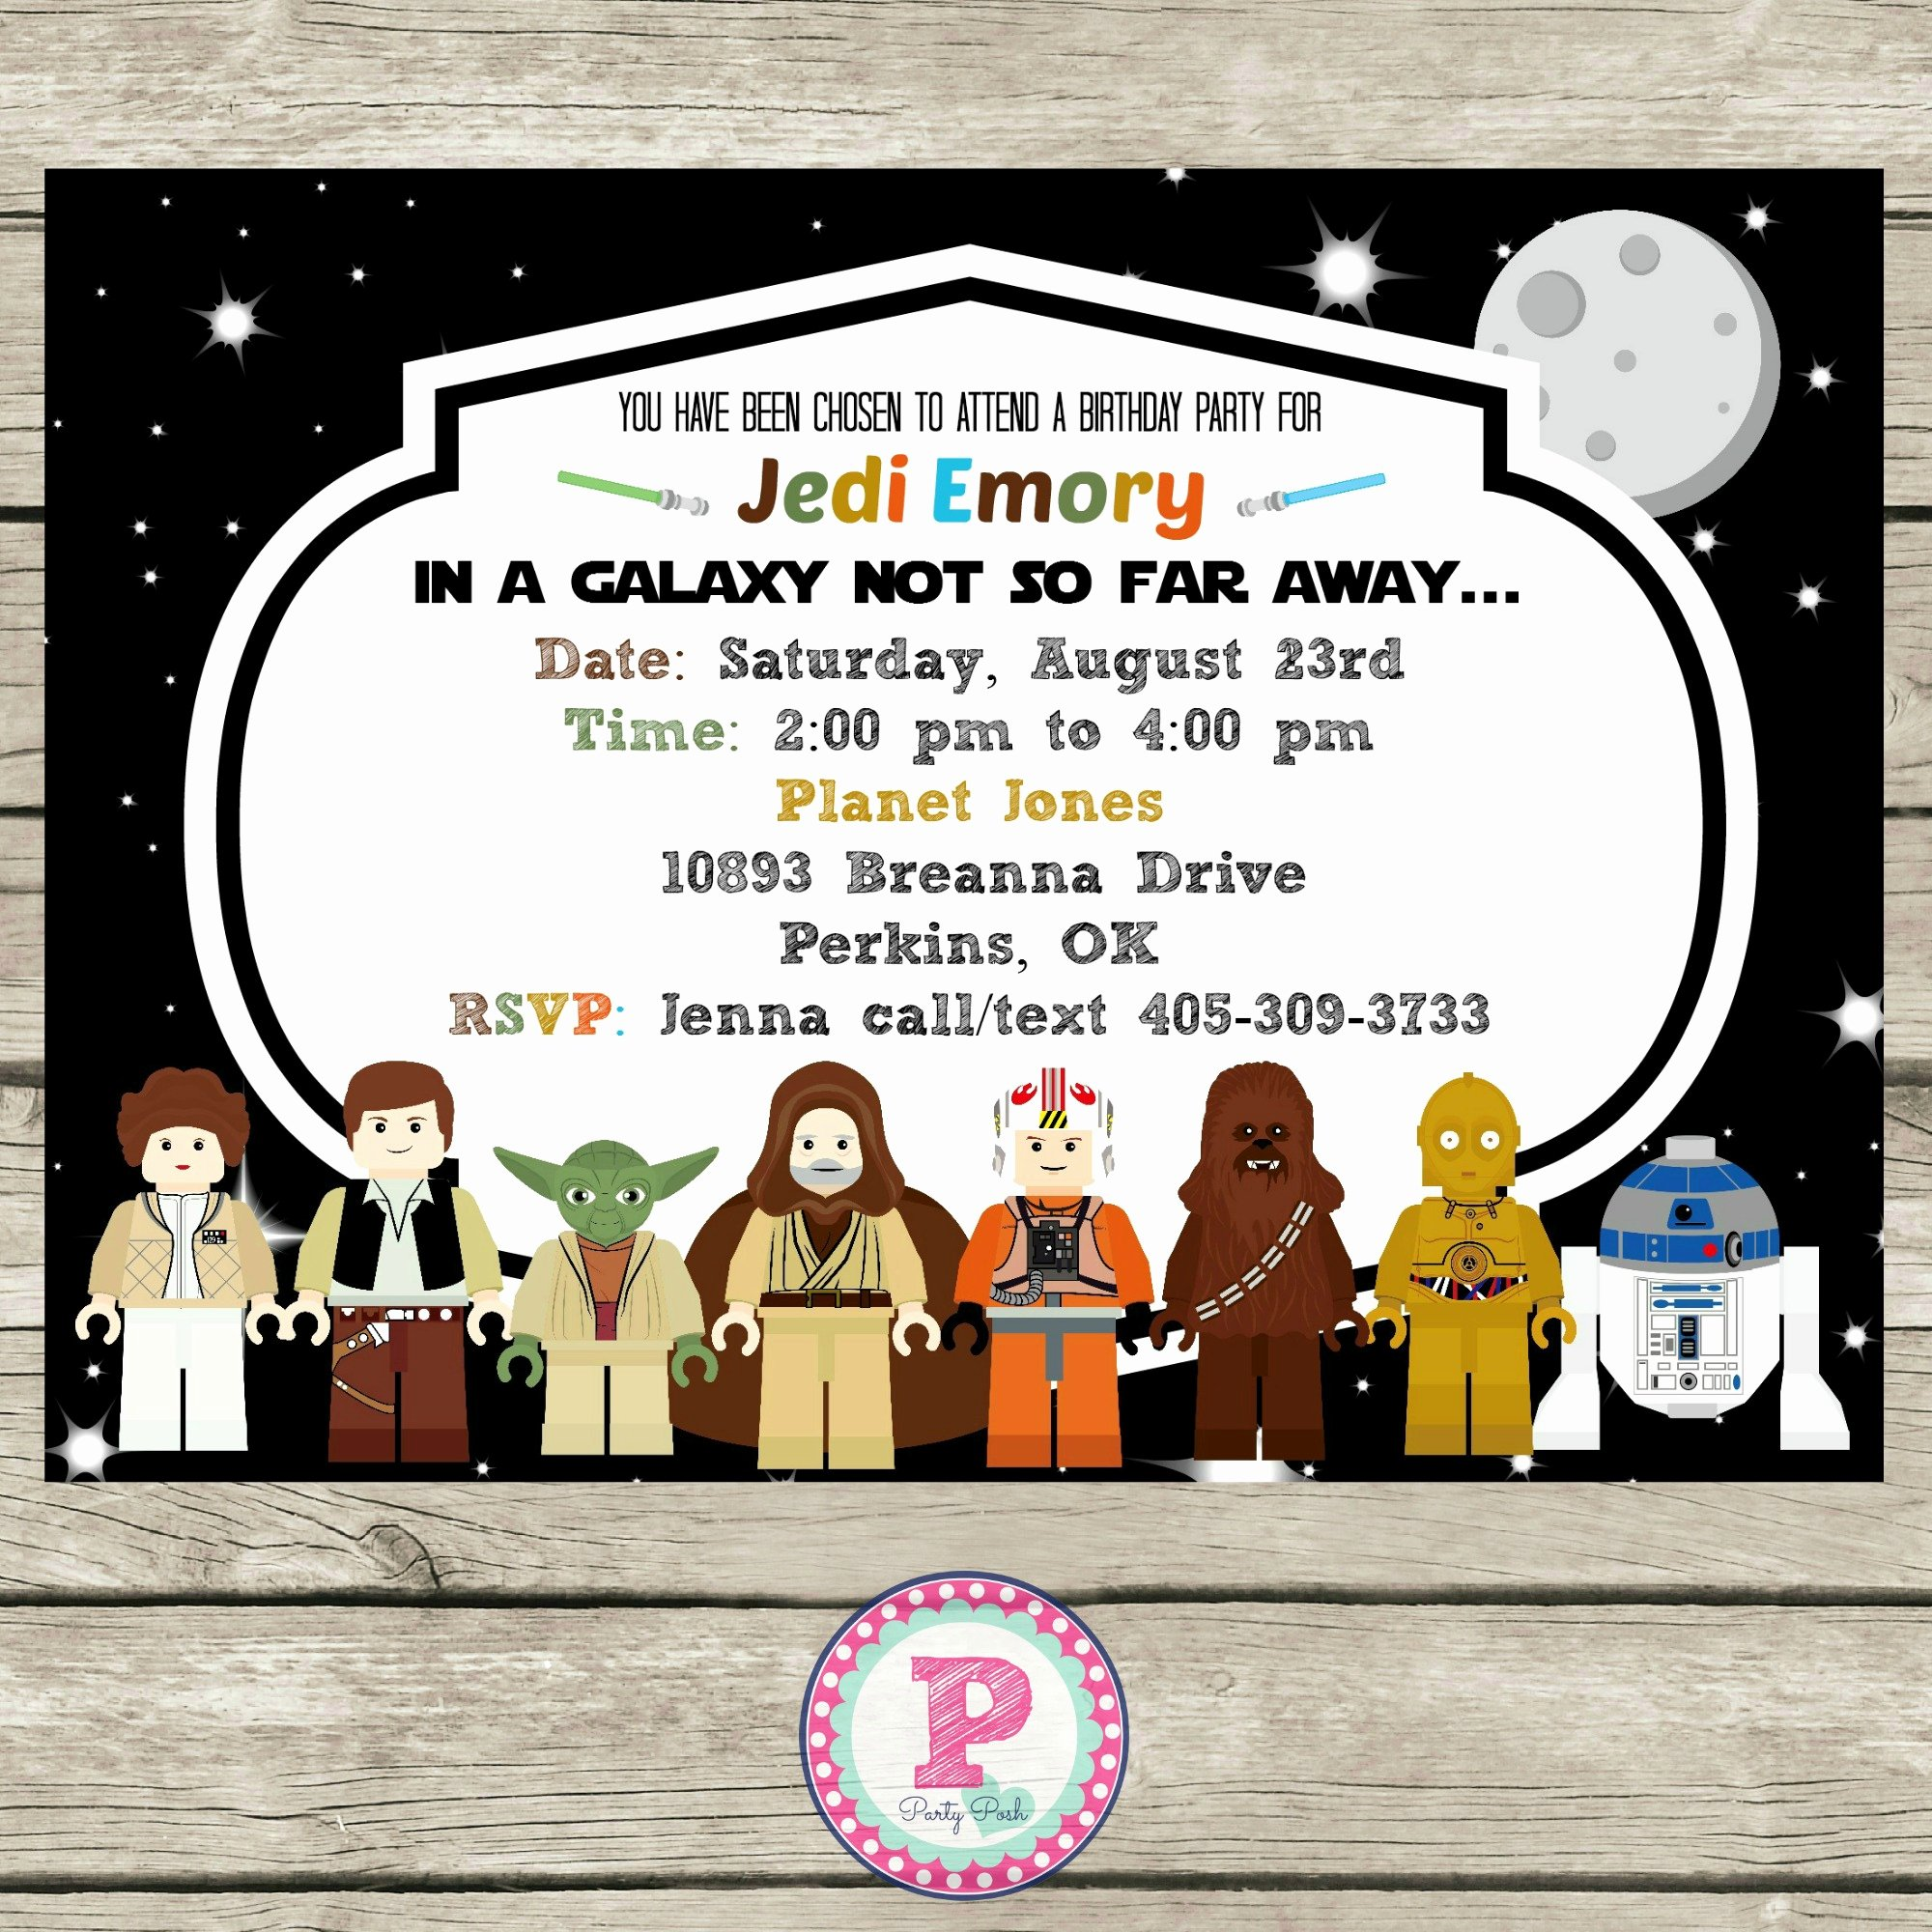 Star Wars Birthday Invite Fresh Star Wars Lego Birthday Party Ideas Invitations Props Printables and More